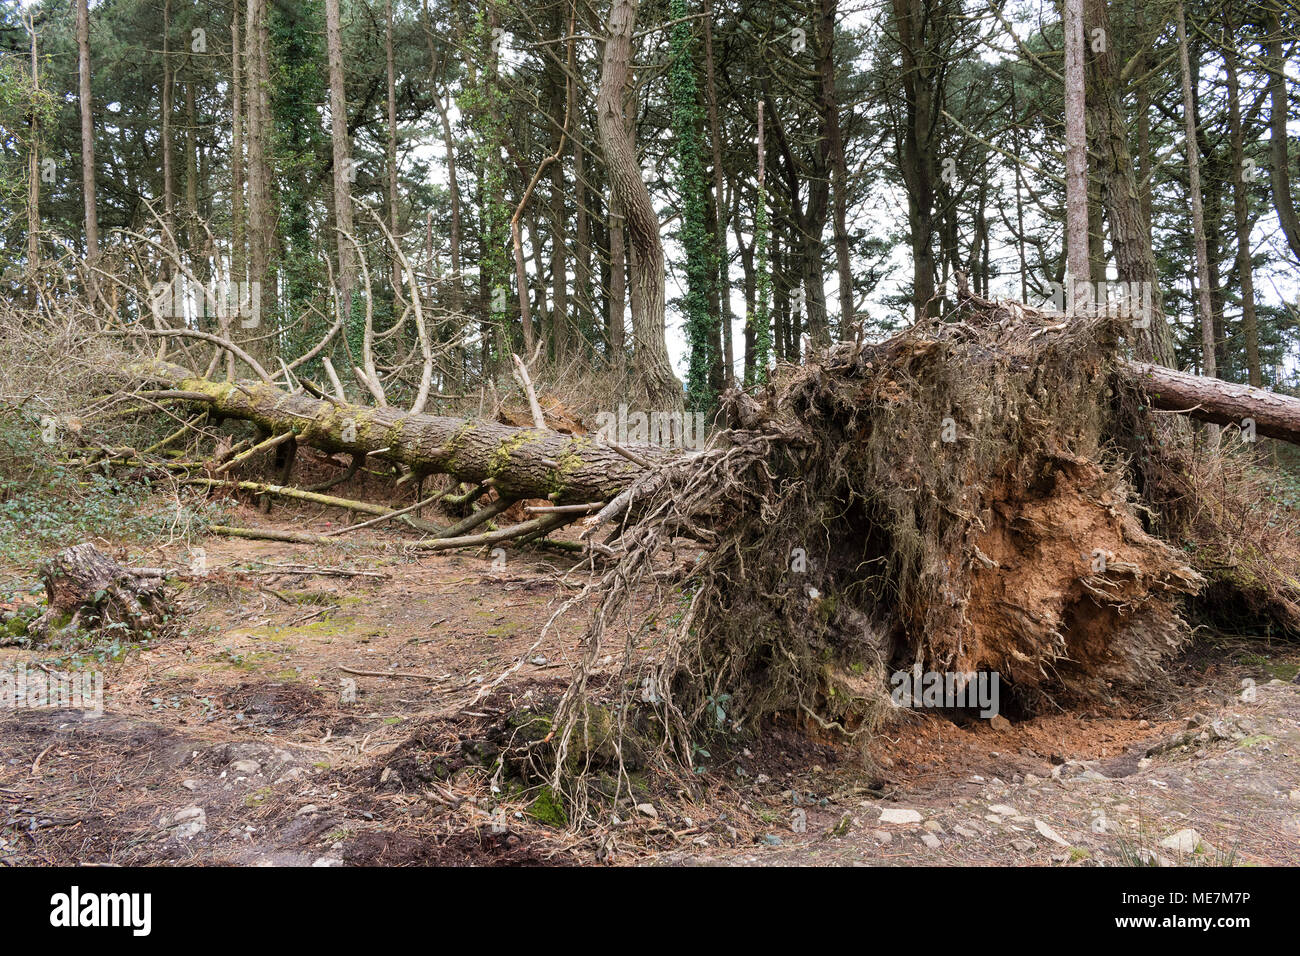 fallen pine tree showing exposed root system - Stock Image